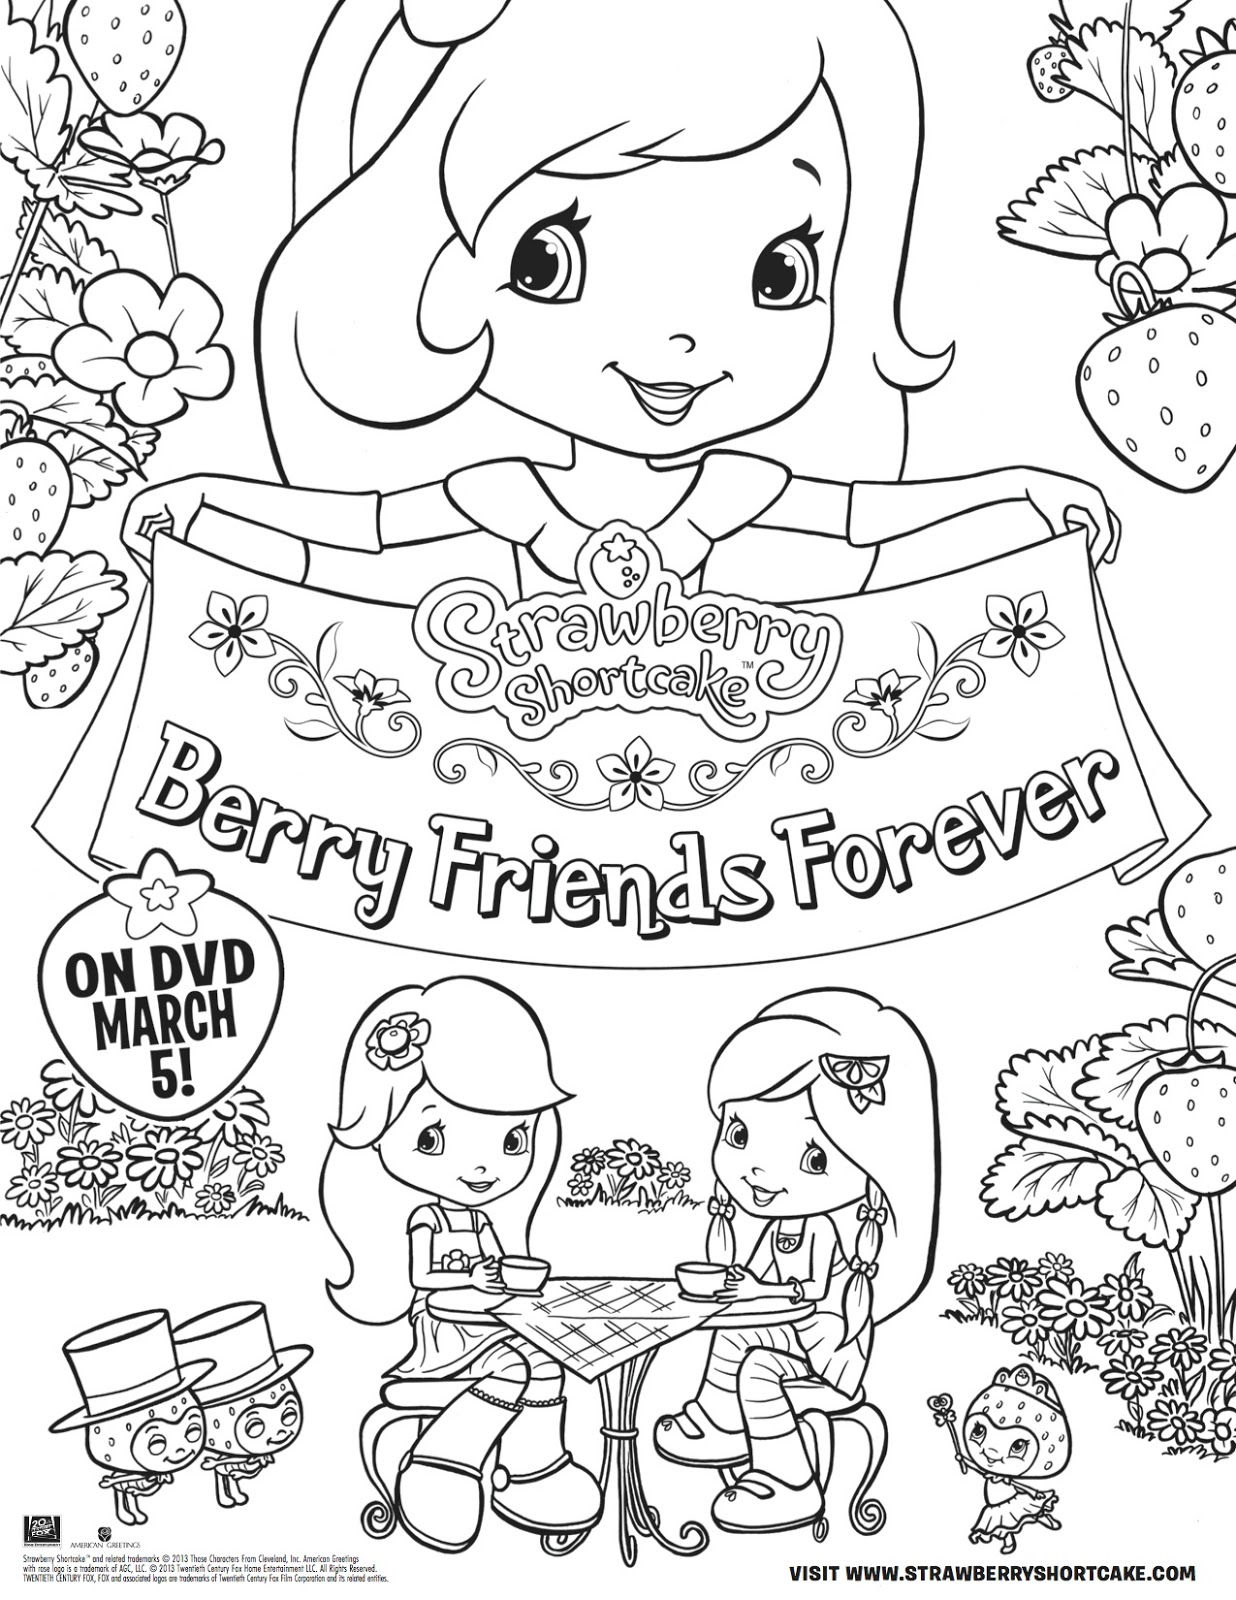 Strawberry Shortcake Birthday Coloring Pages 6 12 Strawberry ... | 1600x1236